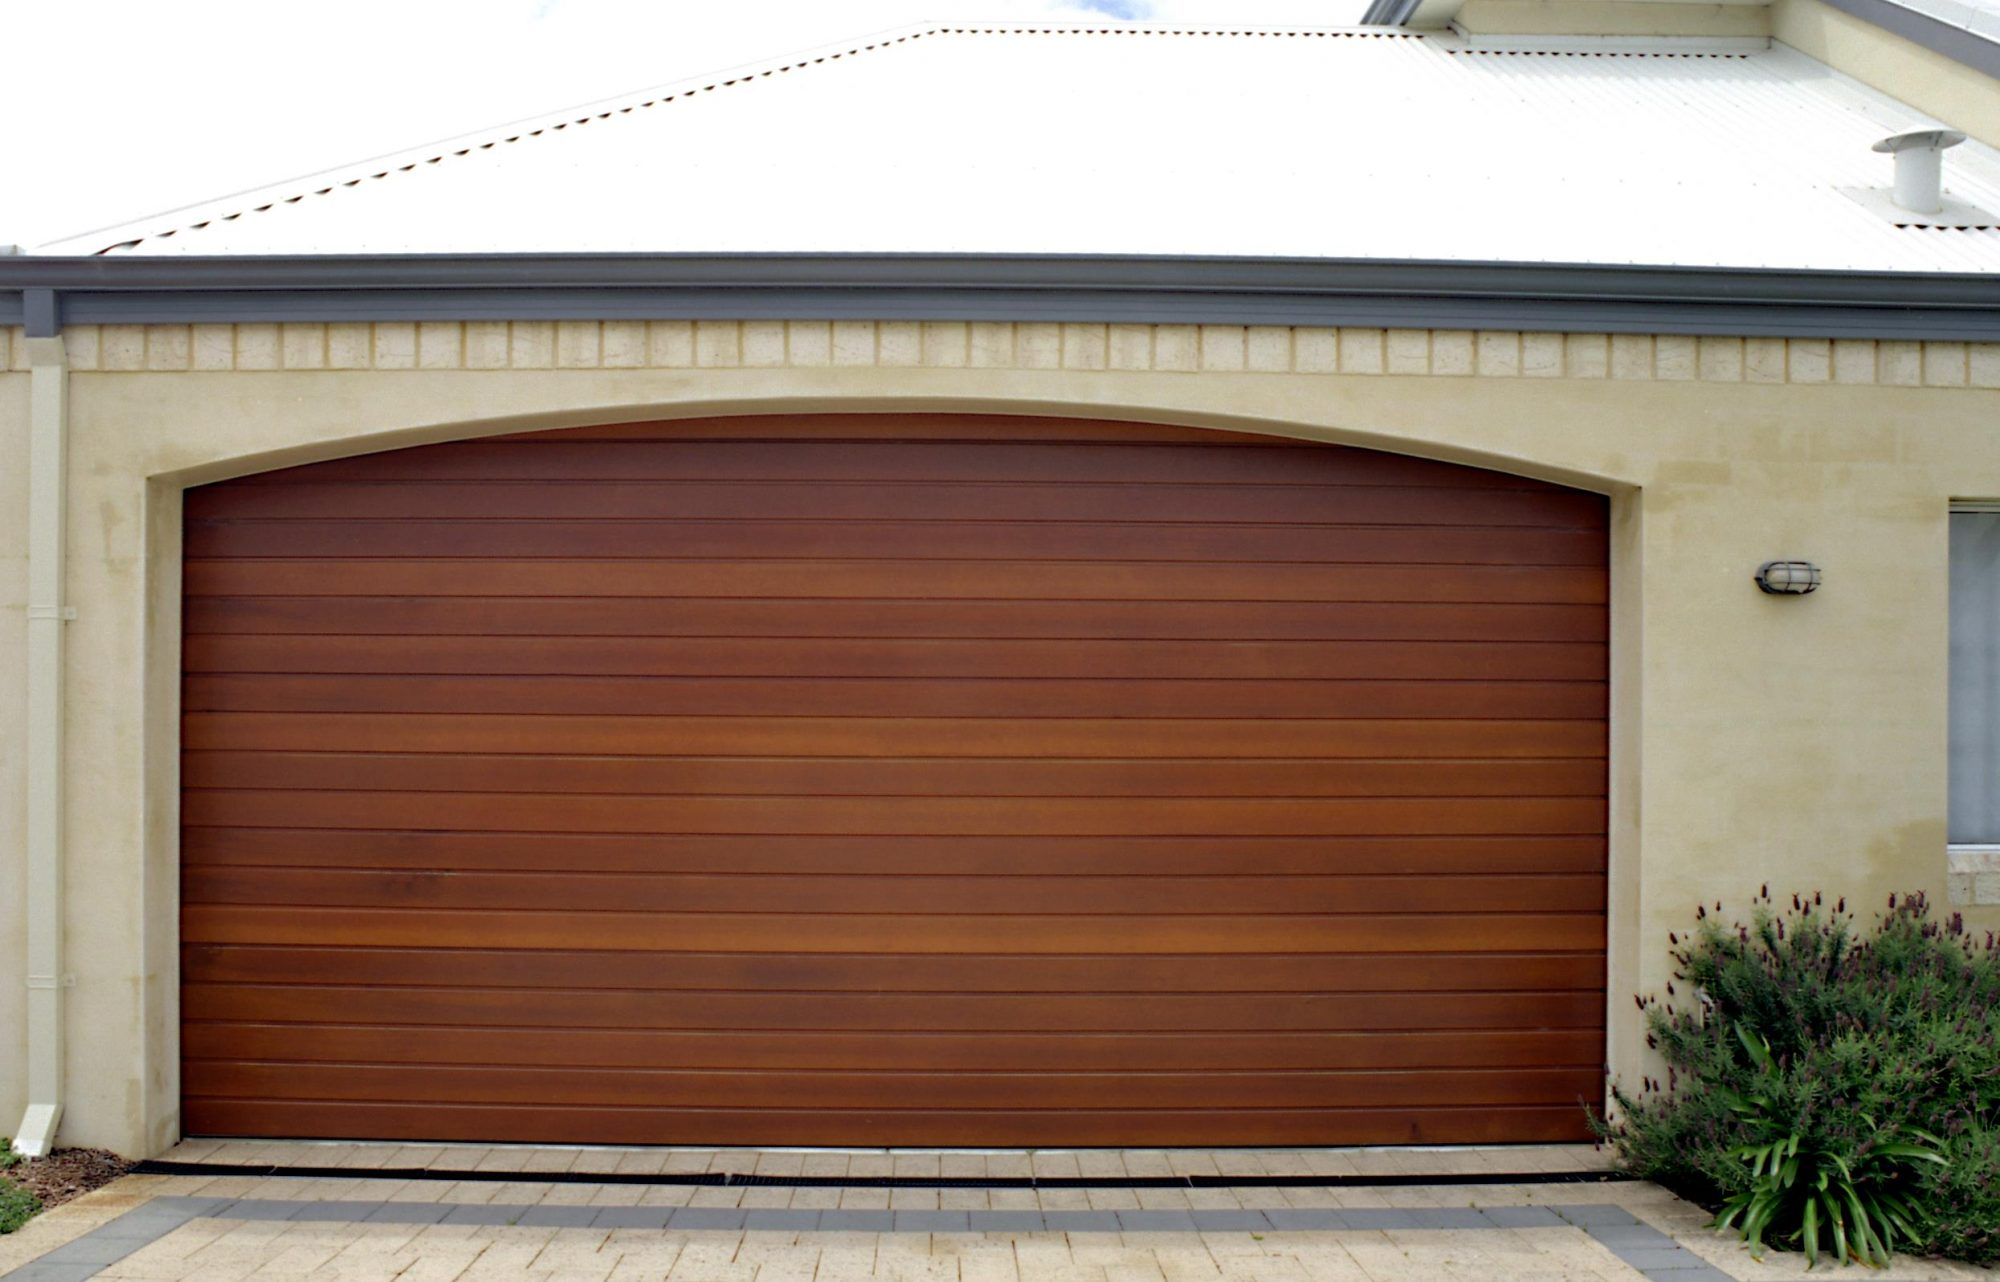 Timber garage door refurbished and protected with Sikkens timber stains